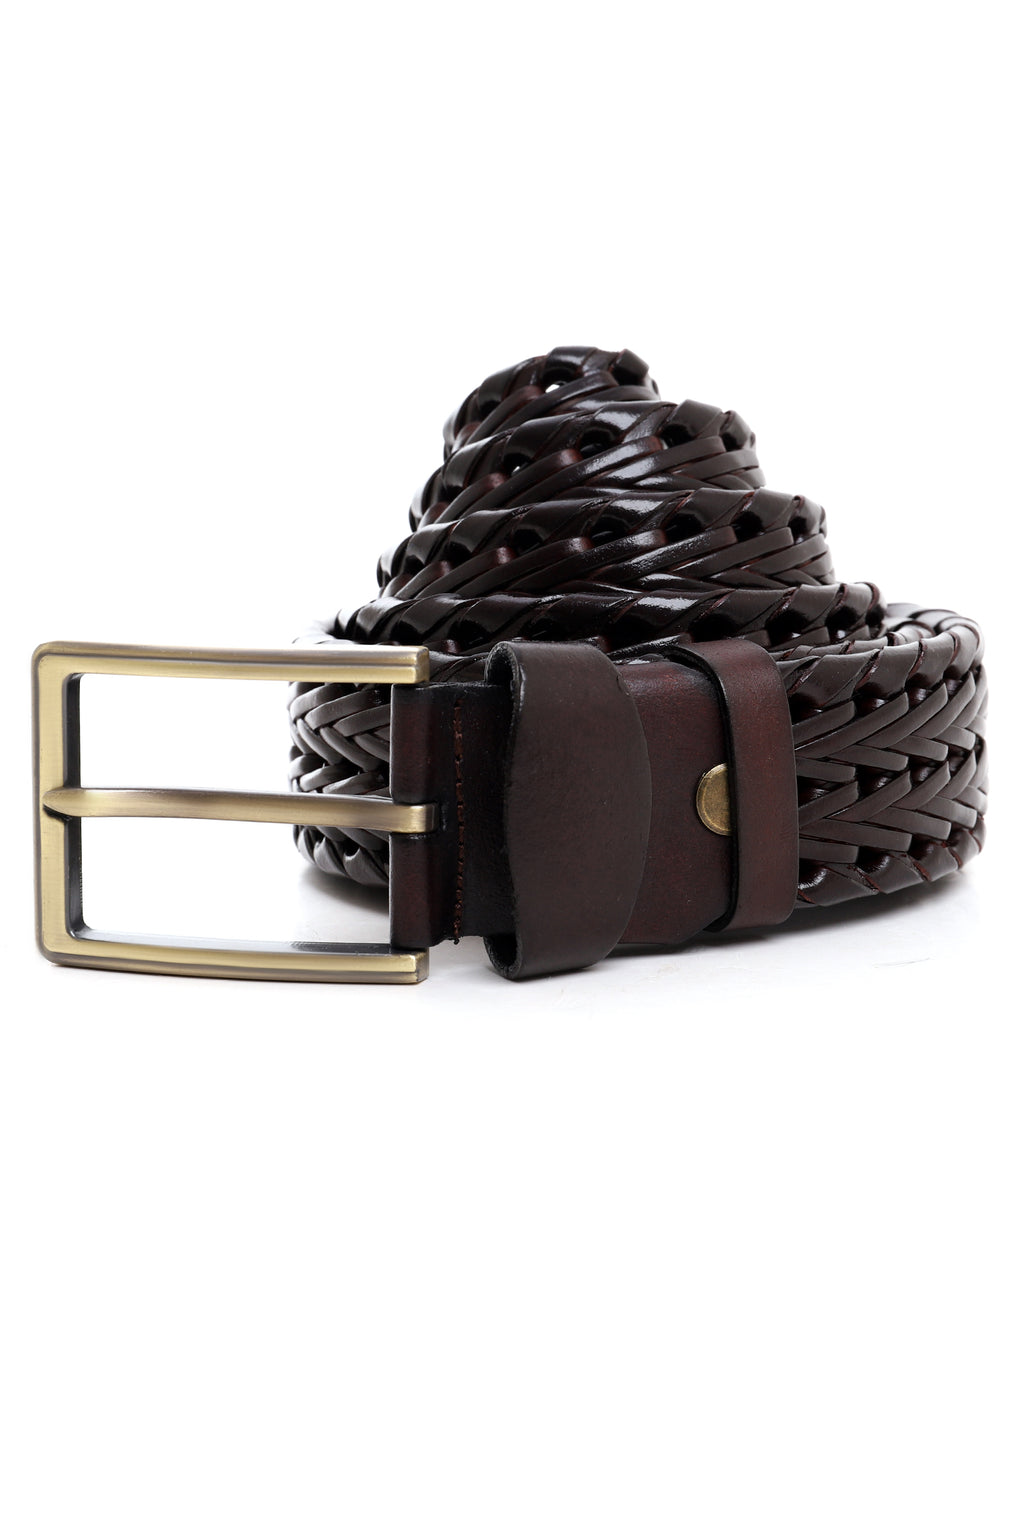 BASKET WEAVE BELT-COFFEE